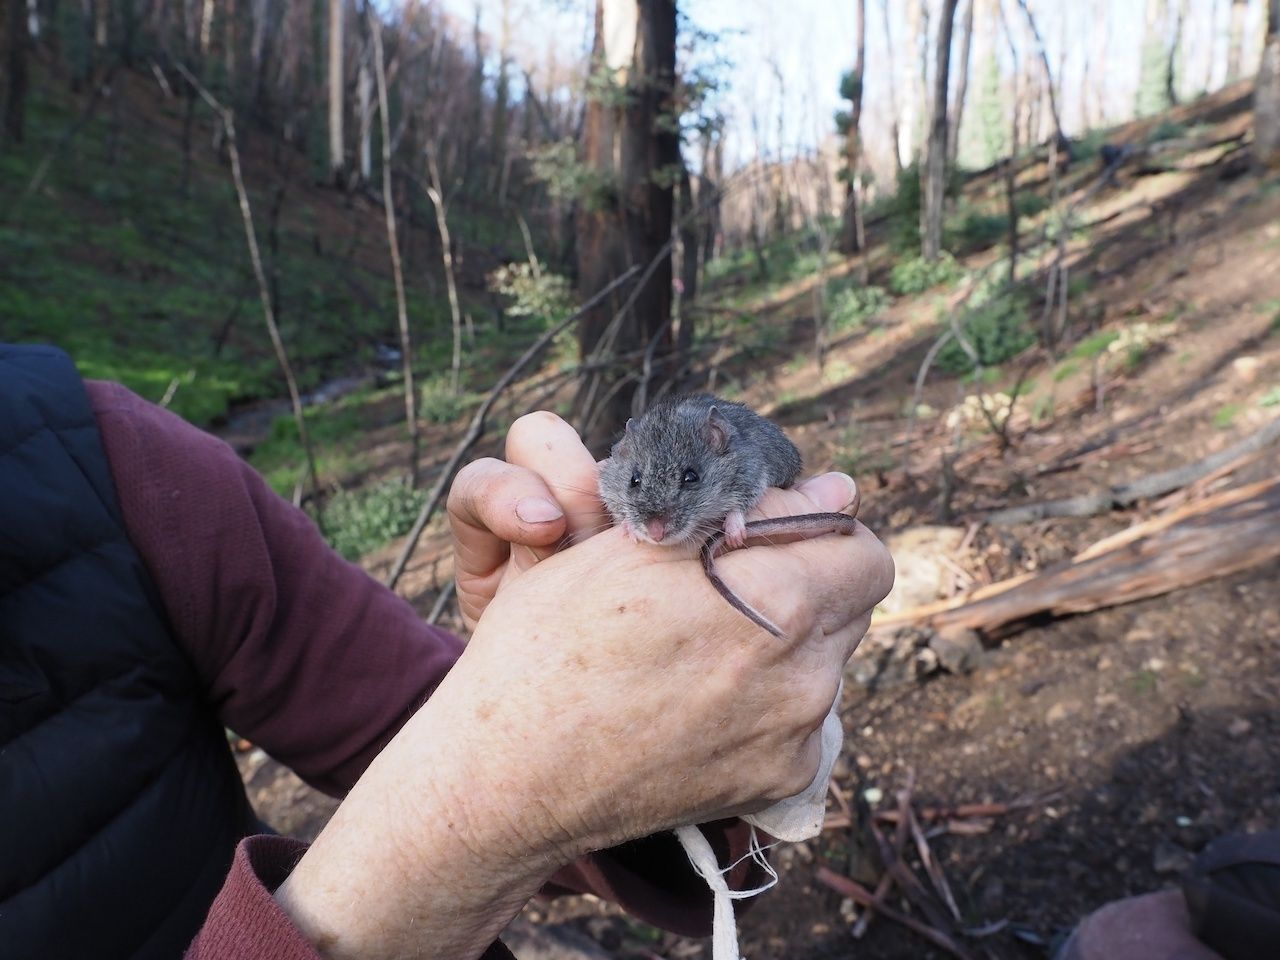 Endangered smoky mouse found alive